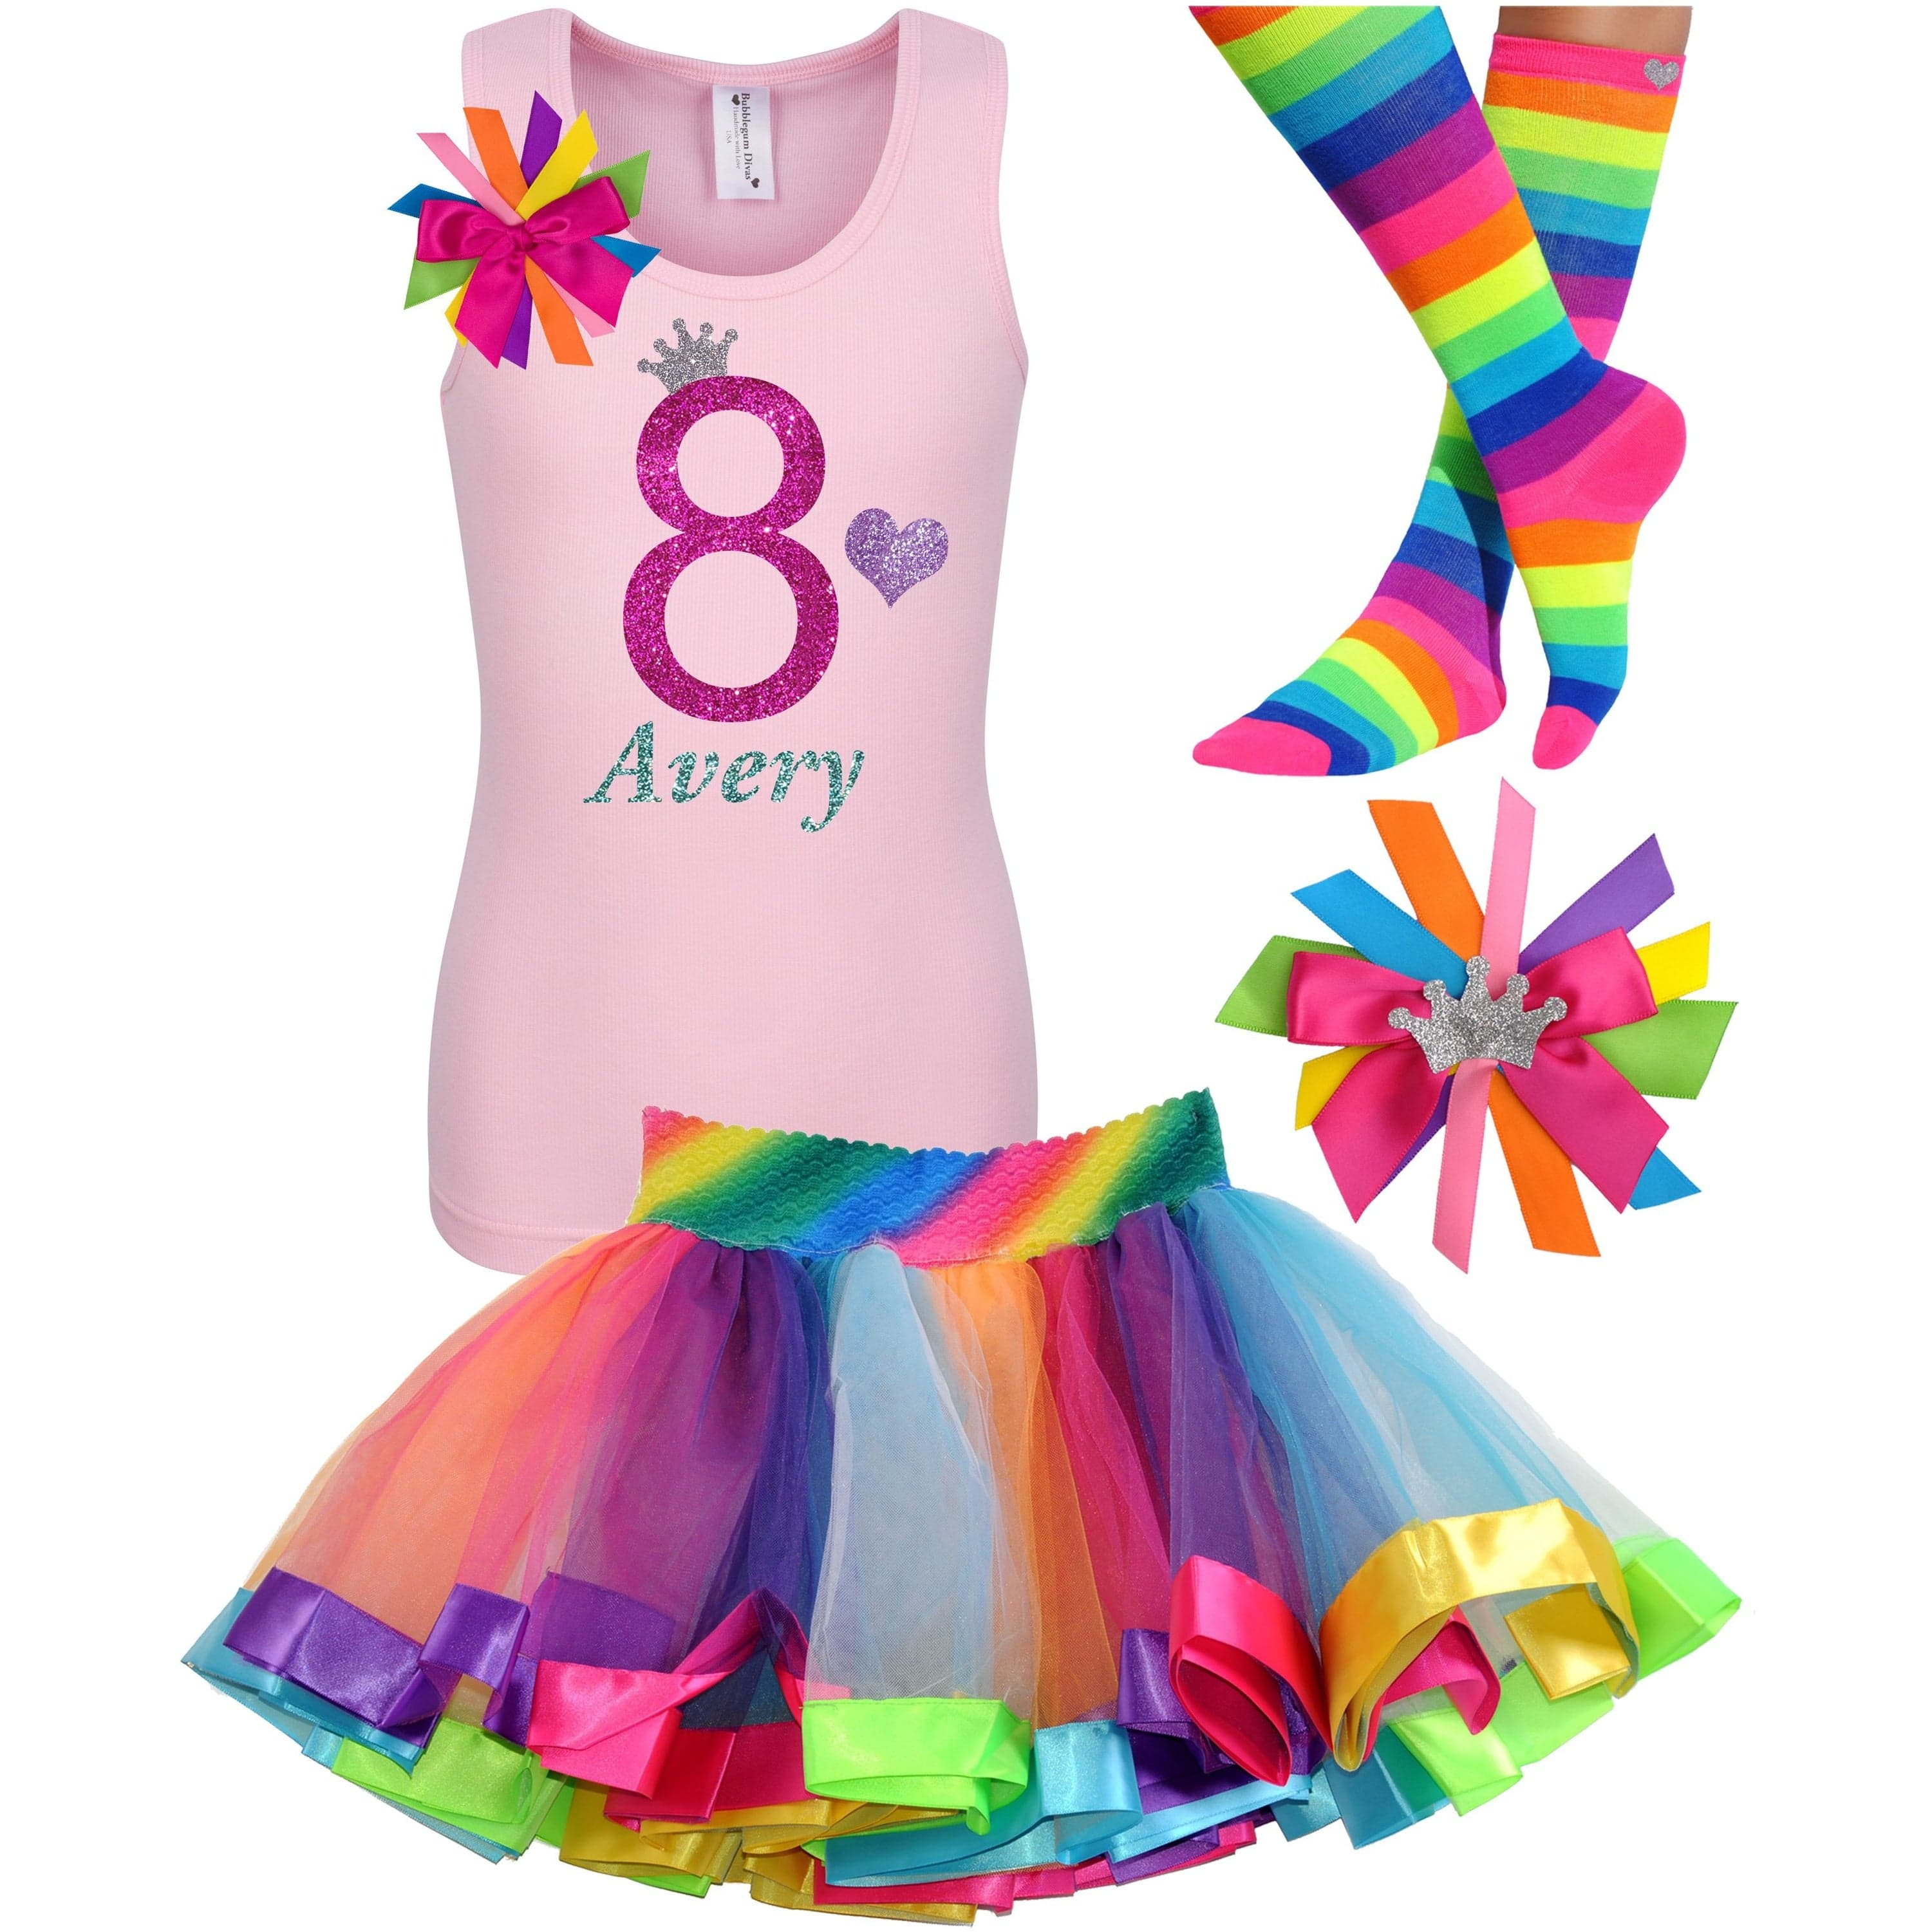 8th Birthday Shirt Rainbow Tutu Girls Party Outfit 4PC Set - Outfit - Bubblegum Divas Store